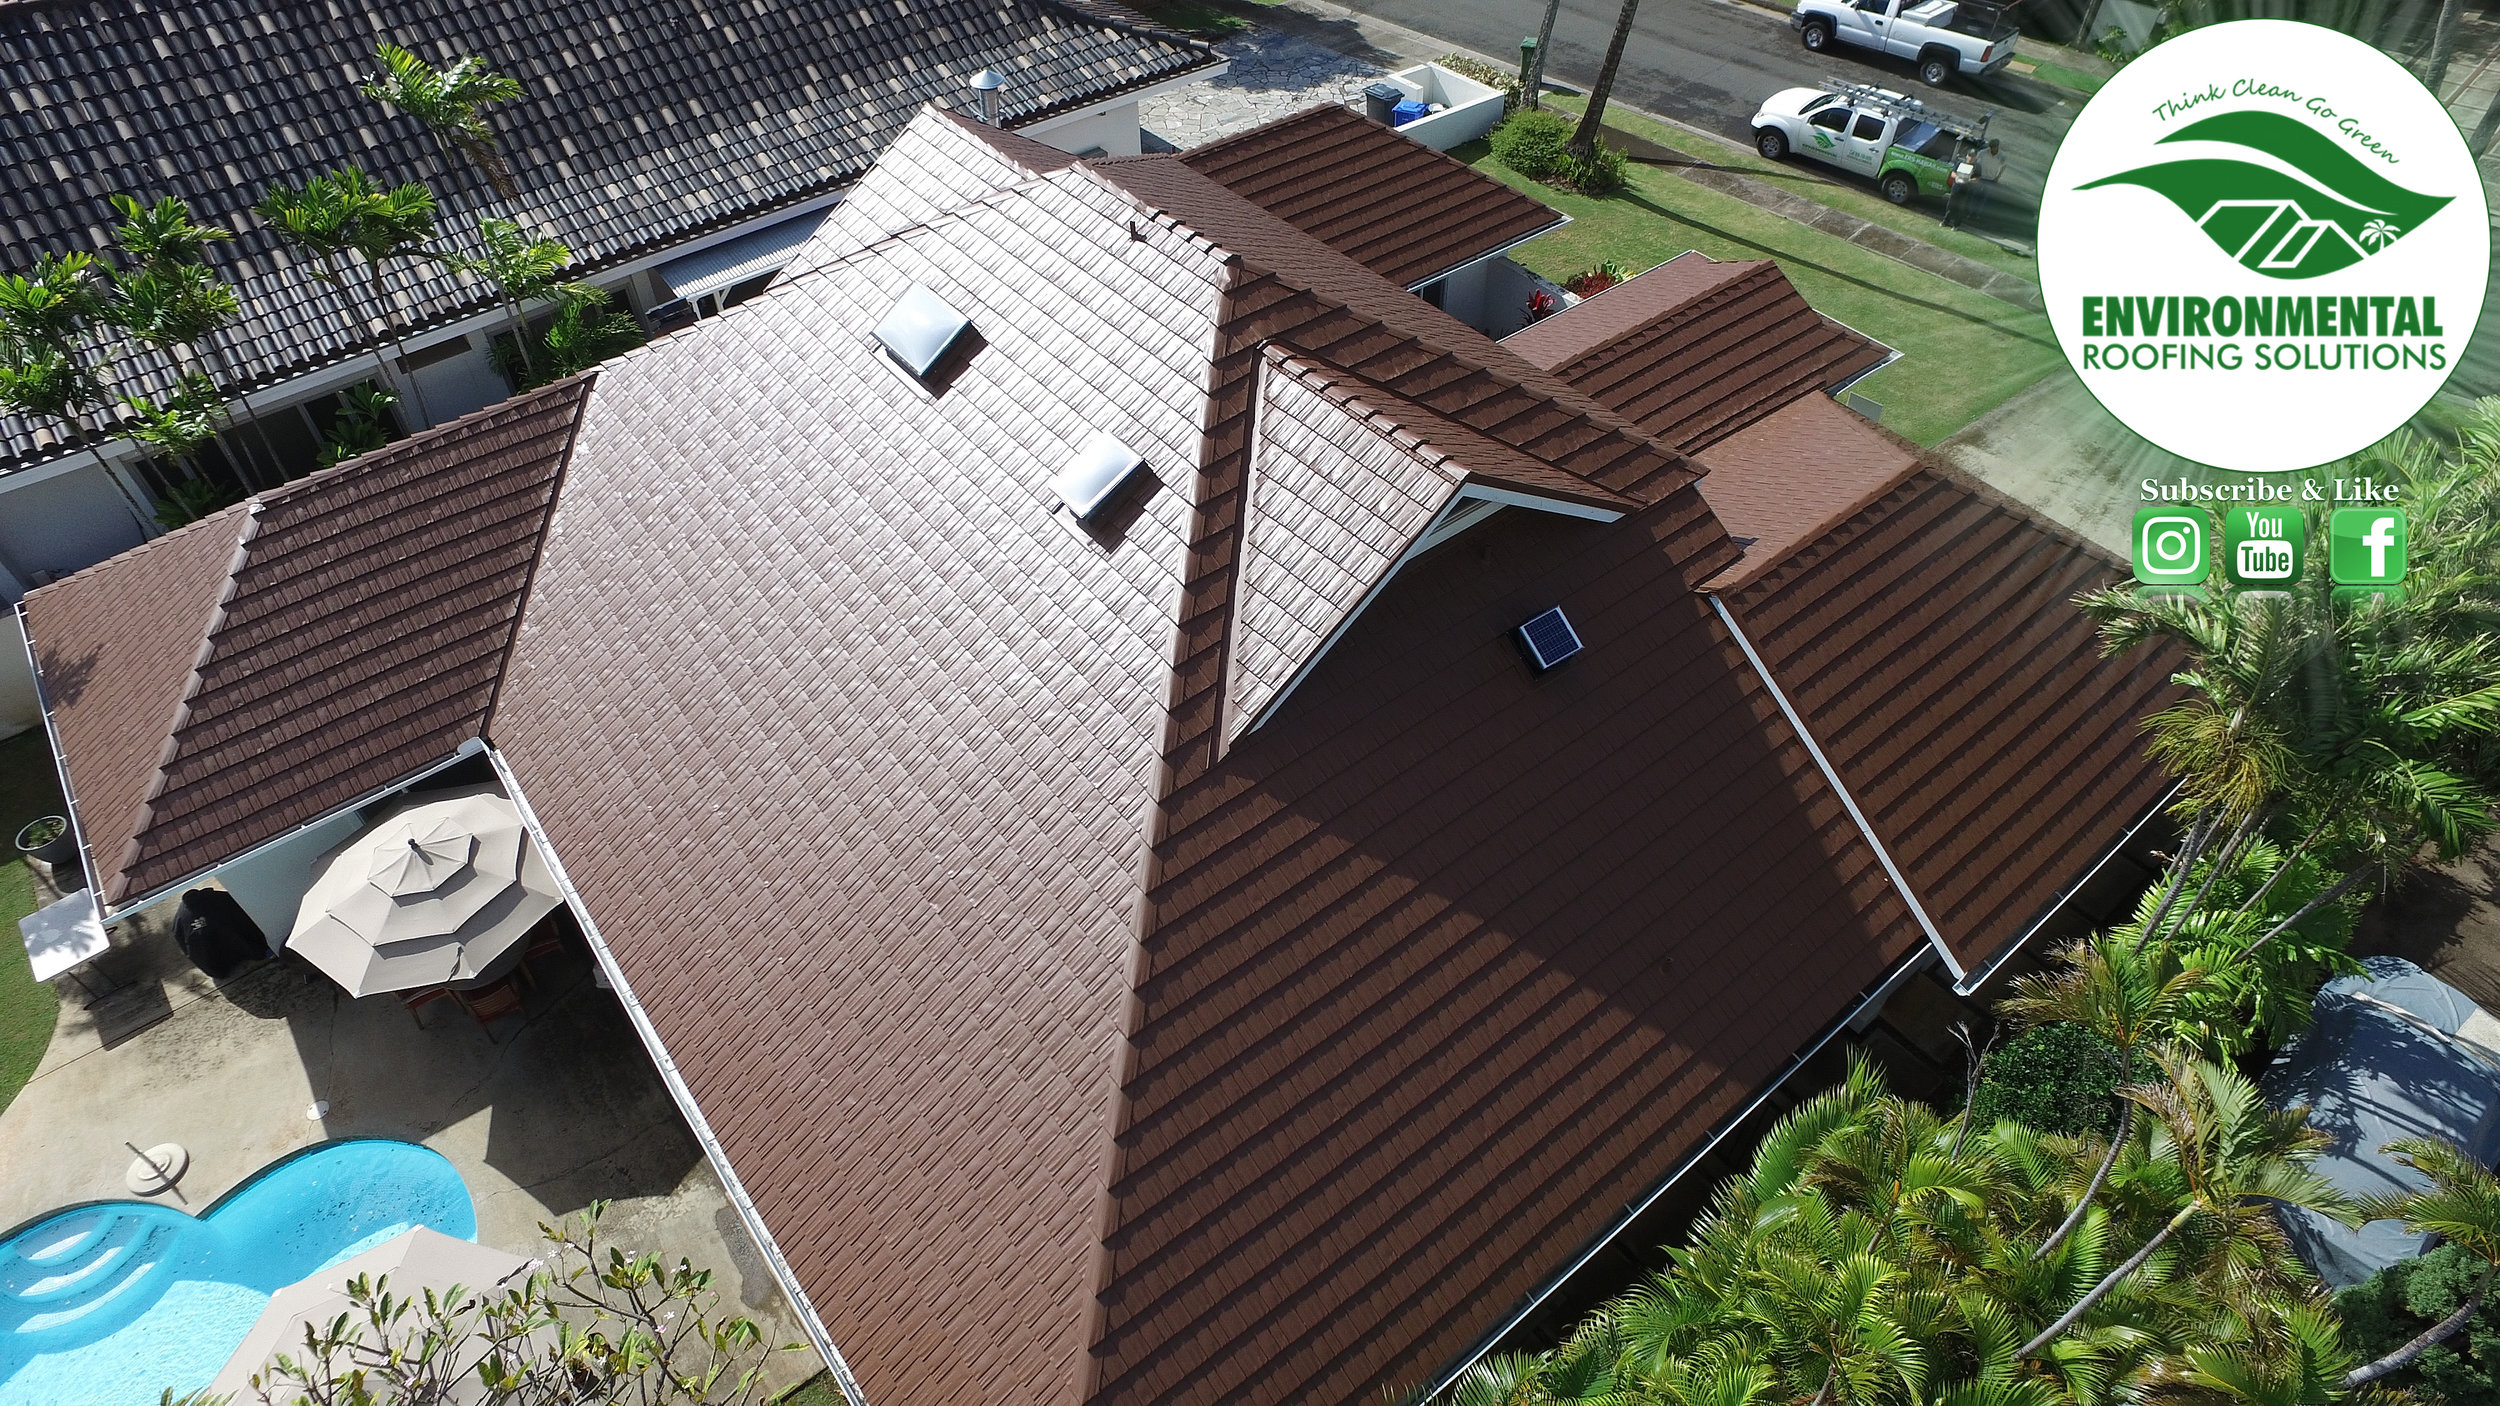 ALUMINUM SHAKE INSTALL BY ENVIRONMENTAL ROOFING SOLUTIONS